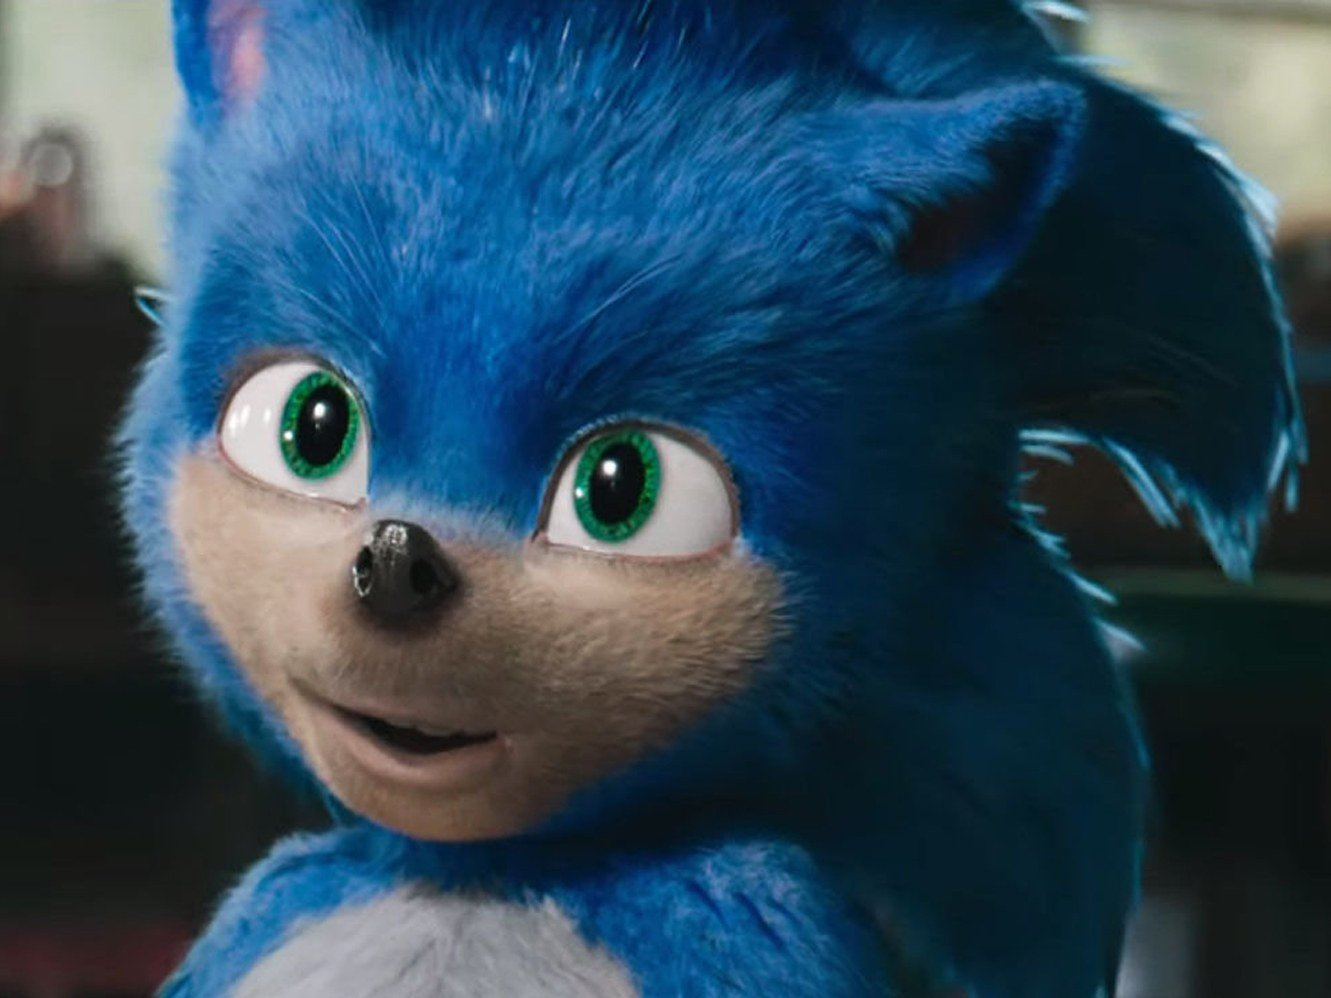 New Sonic The Hedgehog Movie Character Redesign Leaked Shacknews